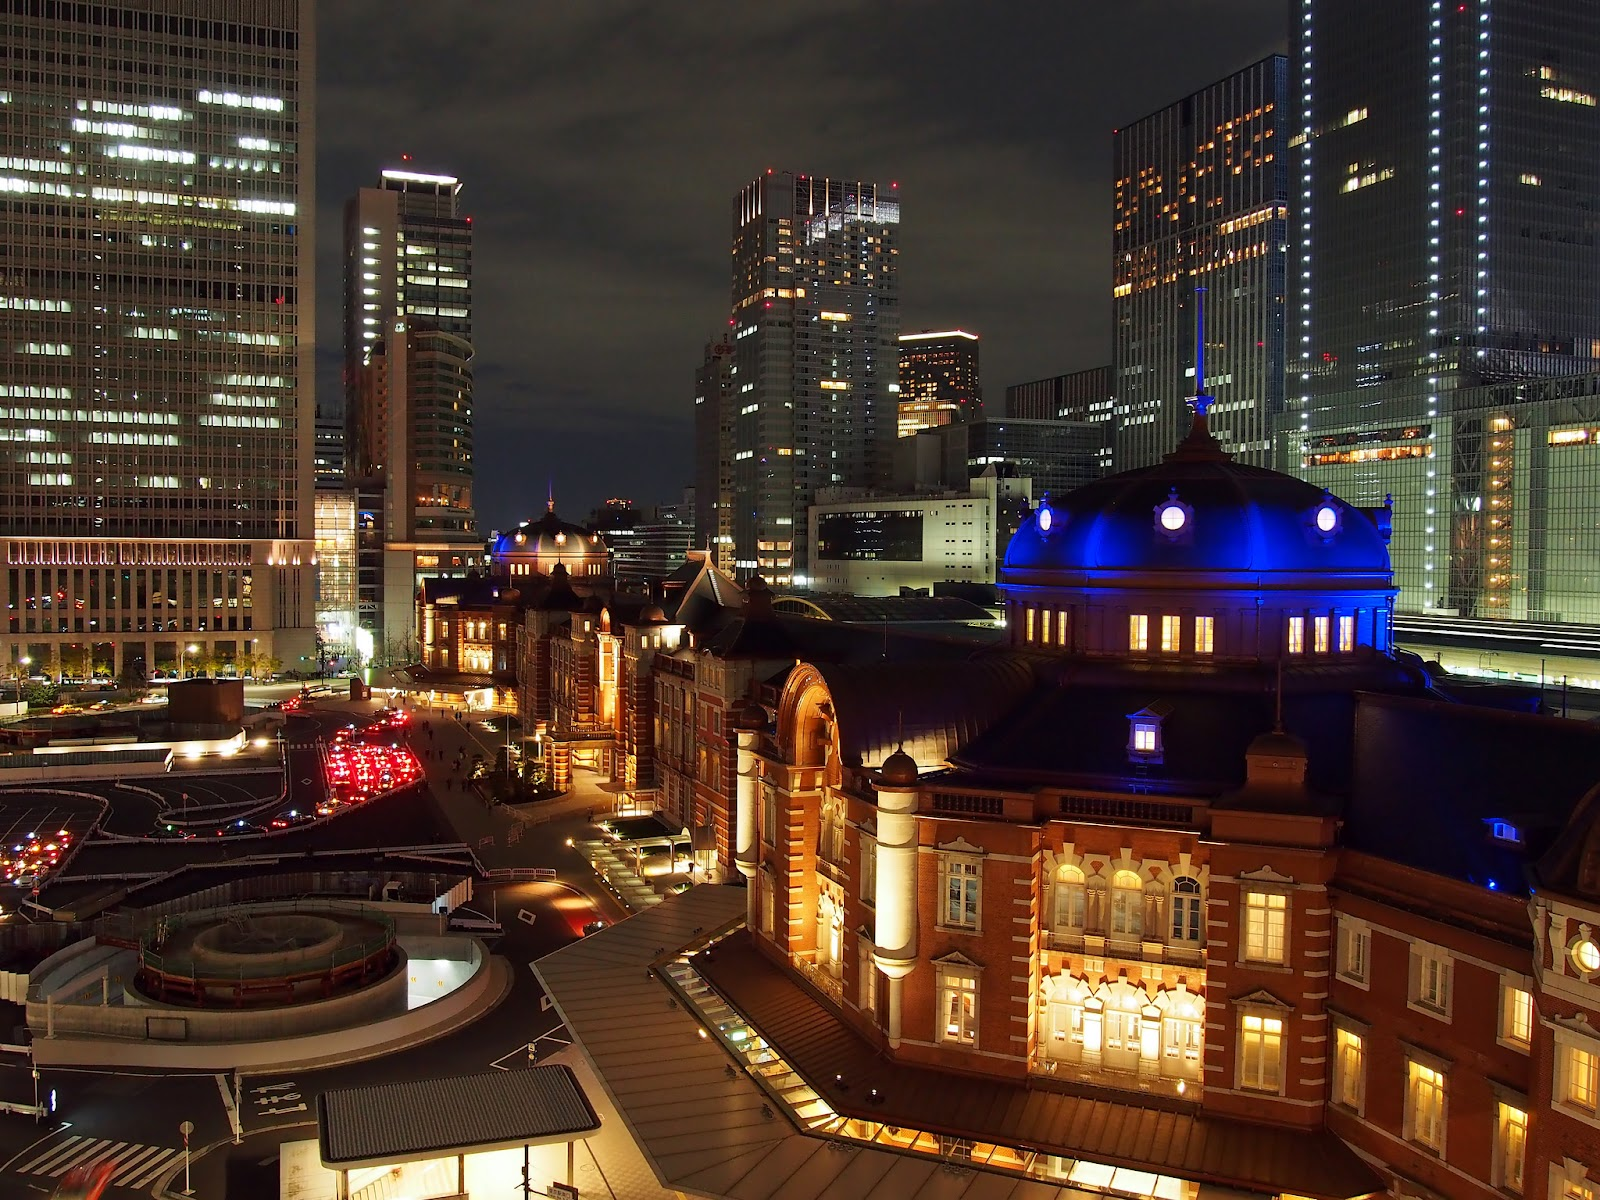 Tokyo excess july 2014 tokyo station brick building photo via creative commons license from tya fandeluxe Document